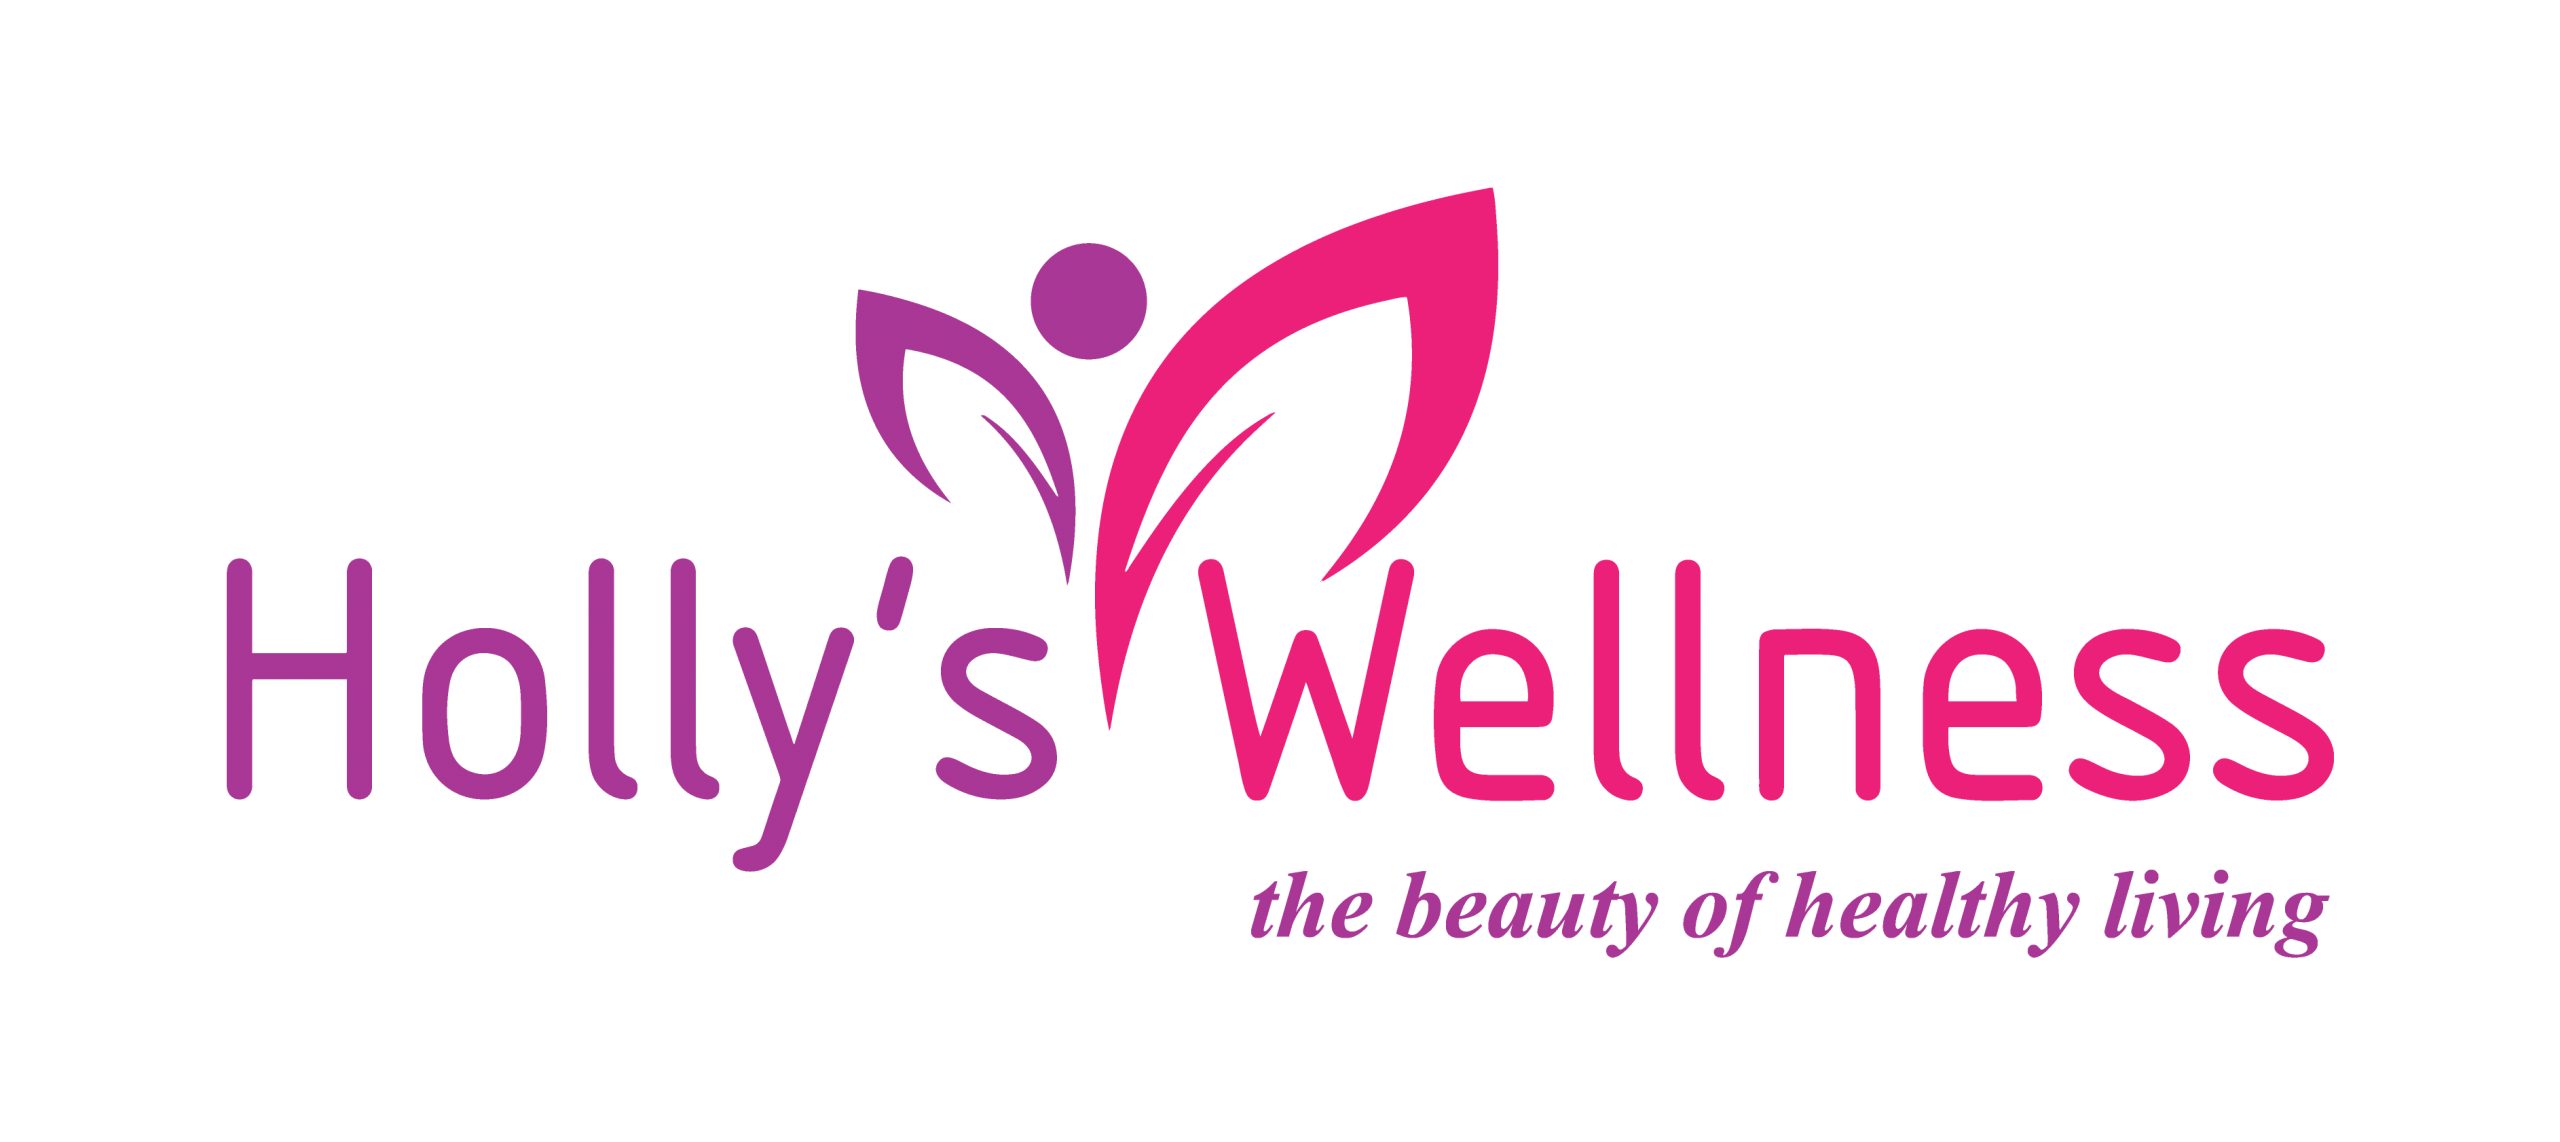 Holly's Wellness